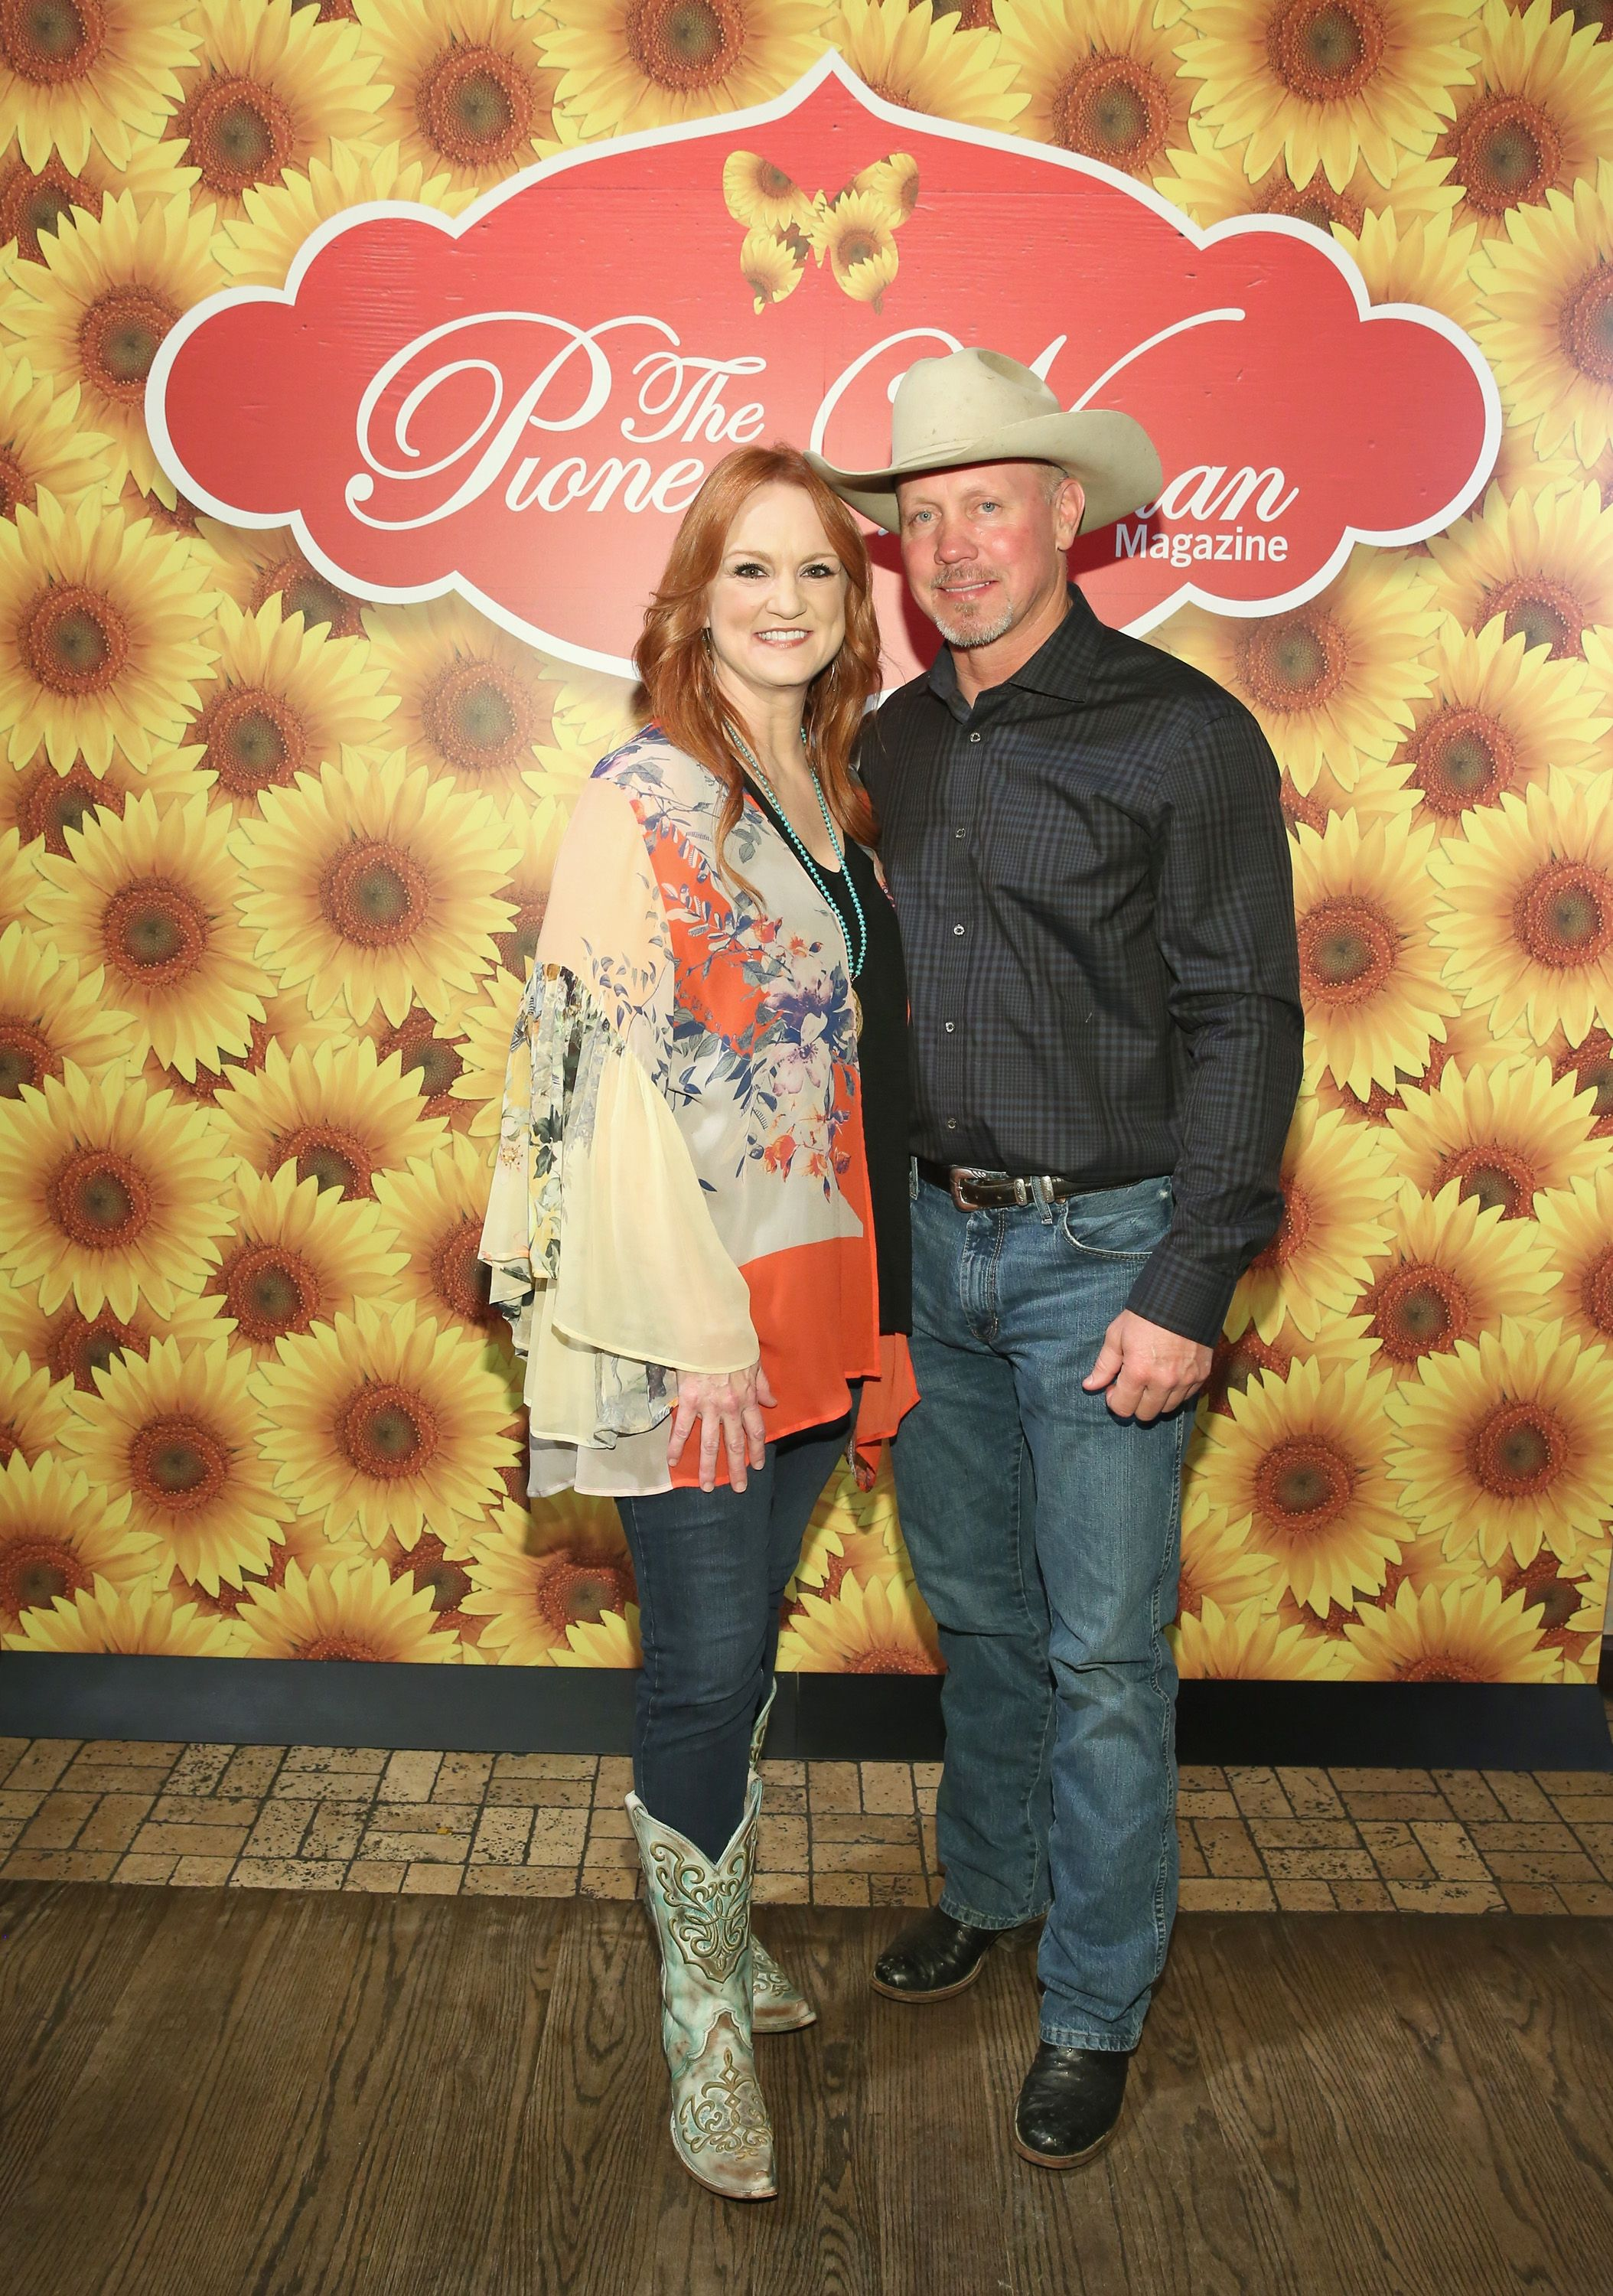 Ree Drummond and Ladd Drummond photo during The Pioneer Woman Magazine Celebration event at The Mason Jar on June 6, 2017 in New York City. | Source: Getty Images